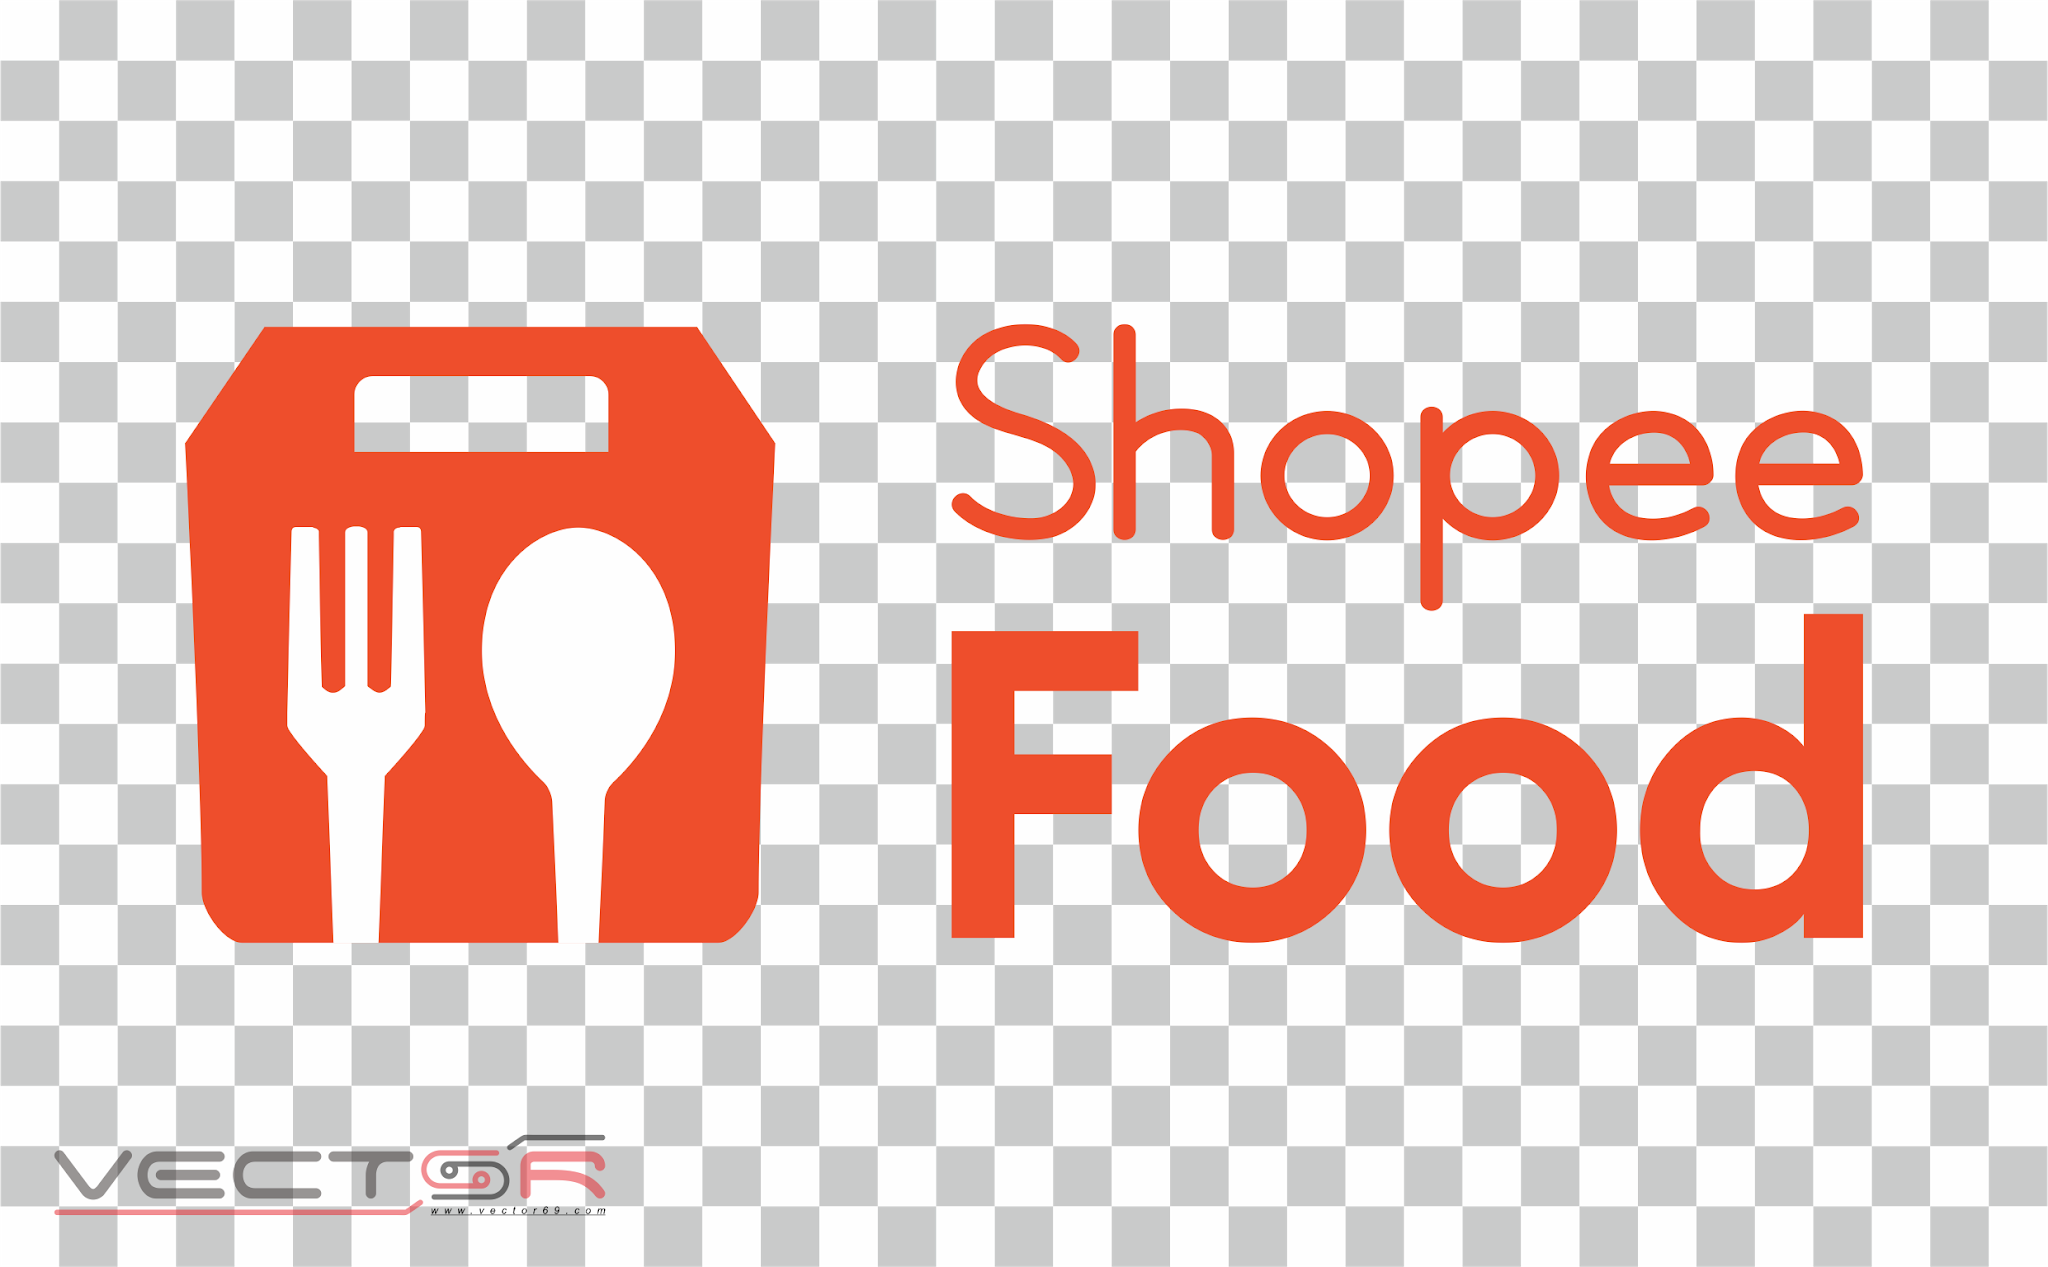 Shopee Food Logo - Download Vector File PNG (Portable Network Graphics)